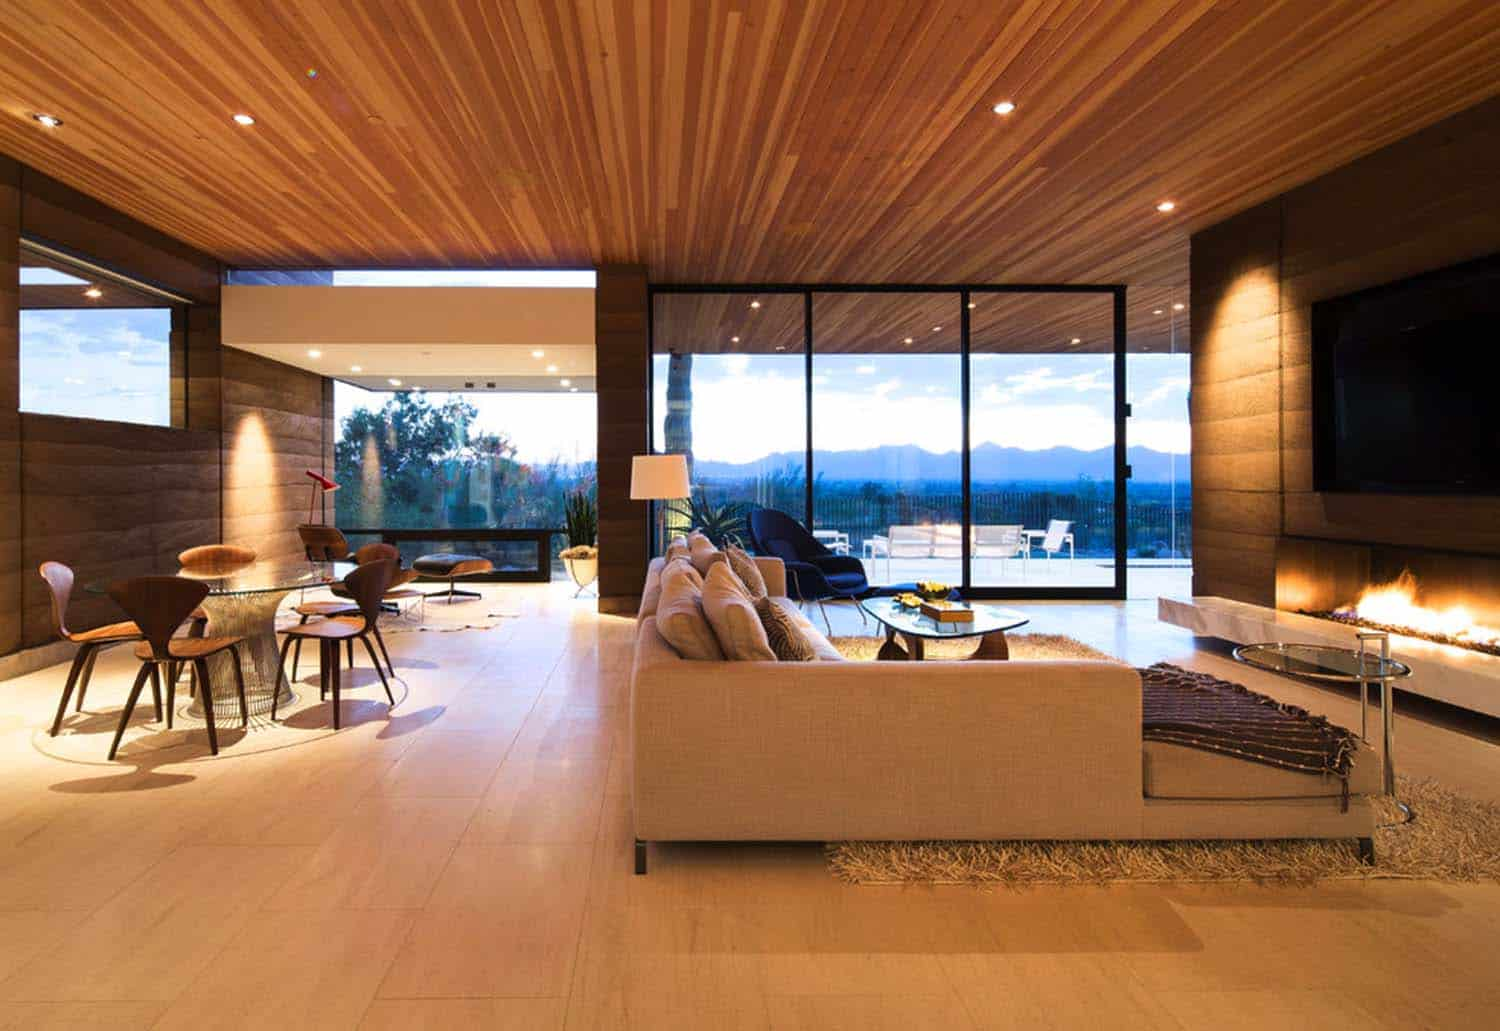 Modern Rammed Earth Home-Kendle Design-03-1 Kindesign